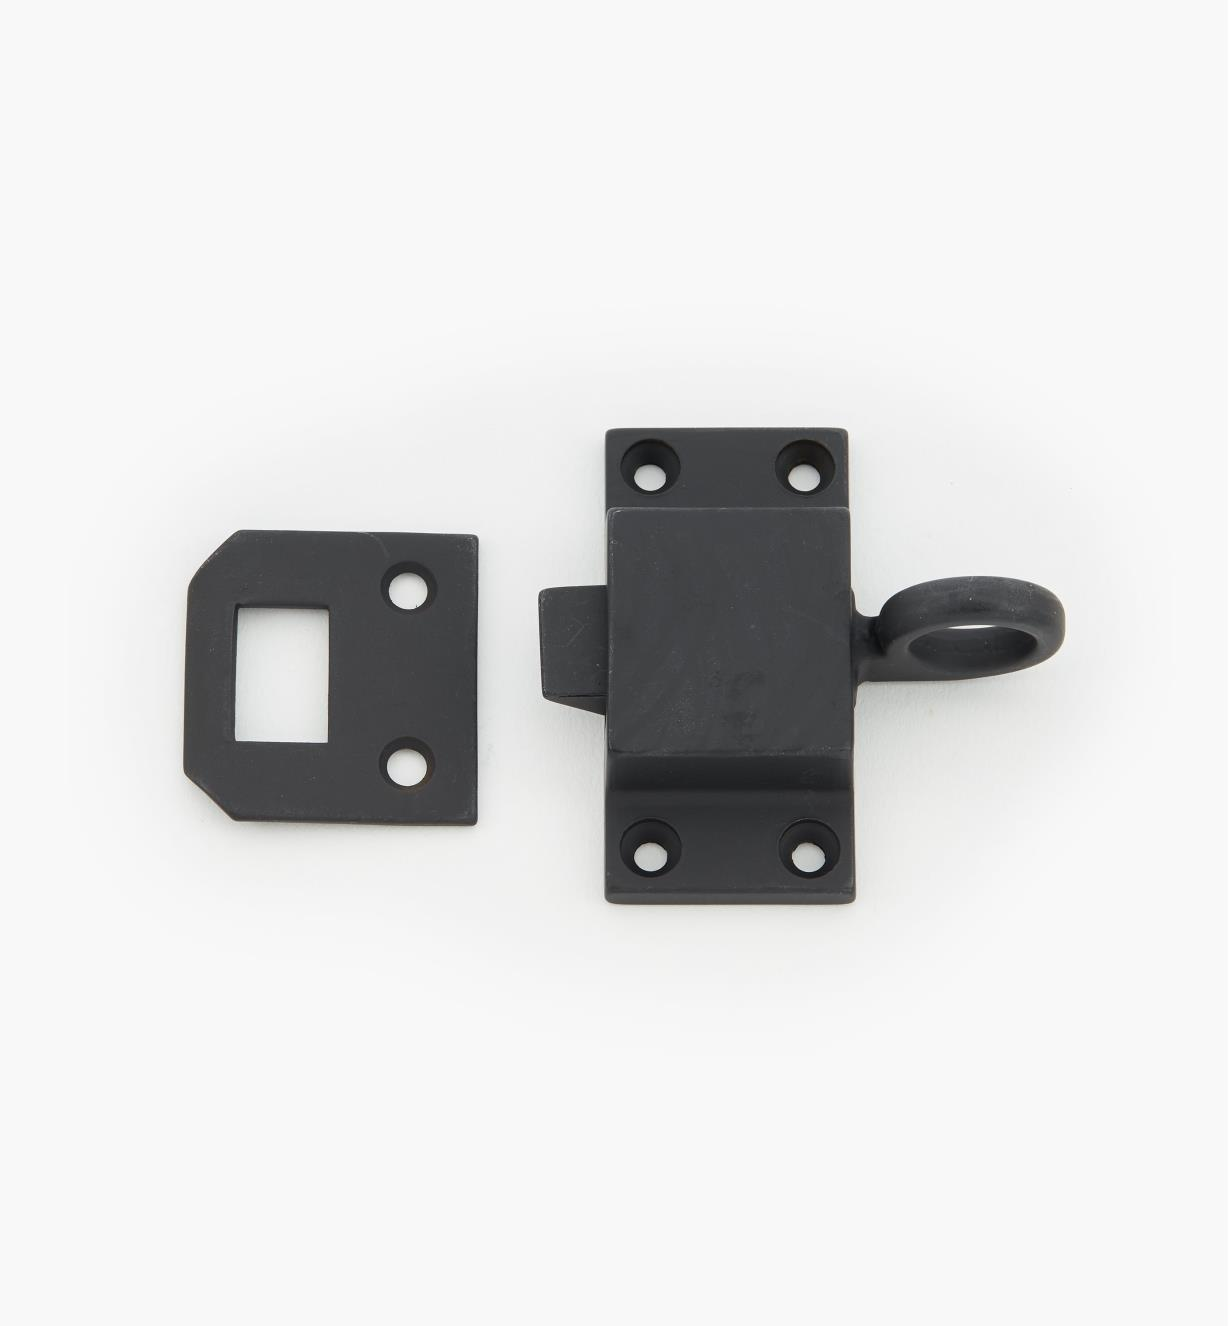 00L0503 - Oil-Rubbed Bronze Transom Latch